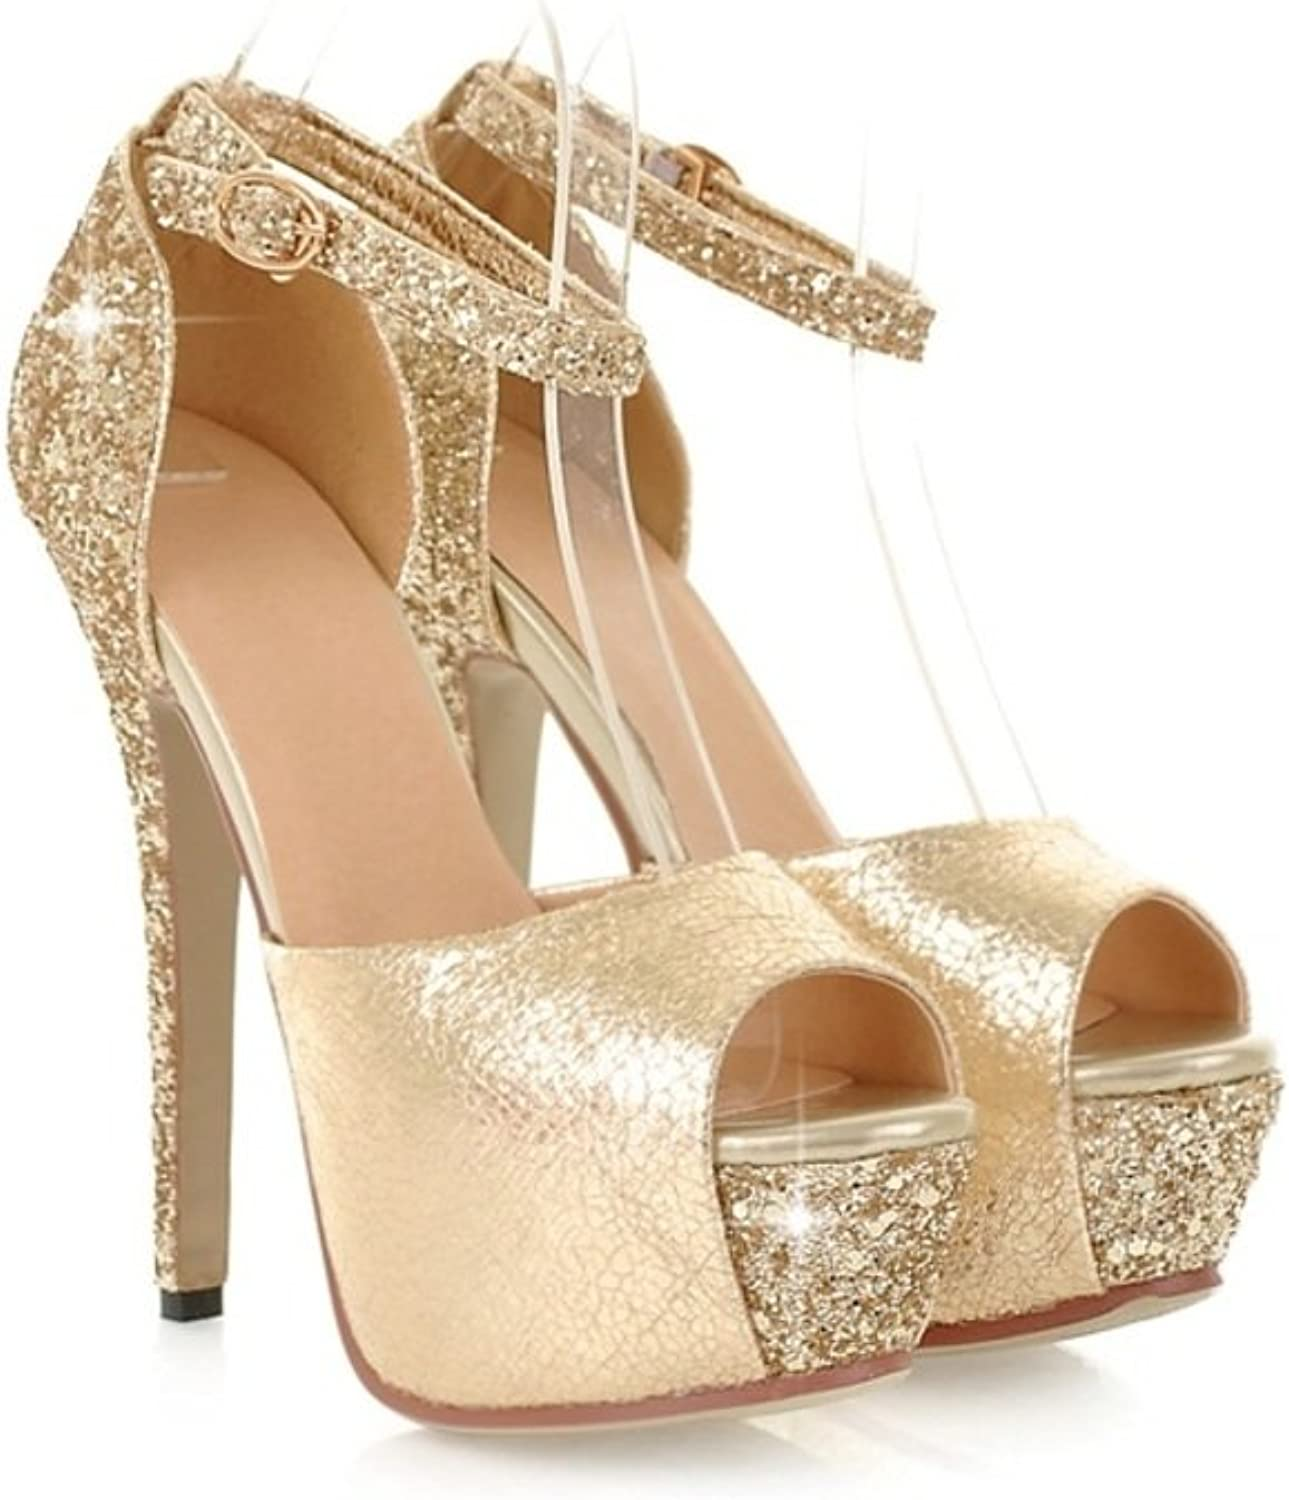 RHFDVGDS Sexy sequined stiletto peep sandals in the summer patent leather waterproof ultra high heel Lady shoes Club high heels